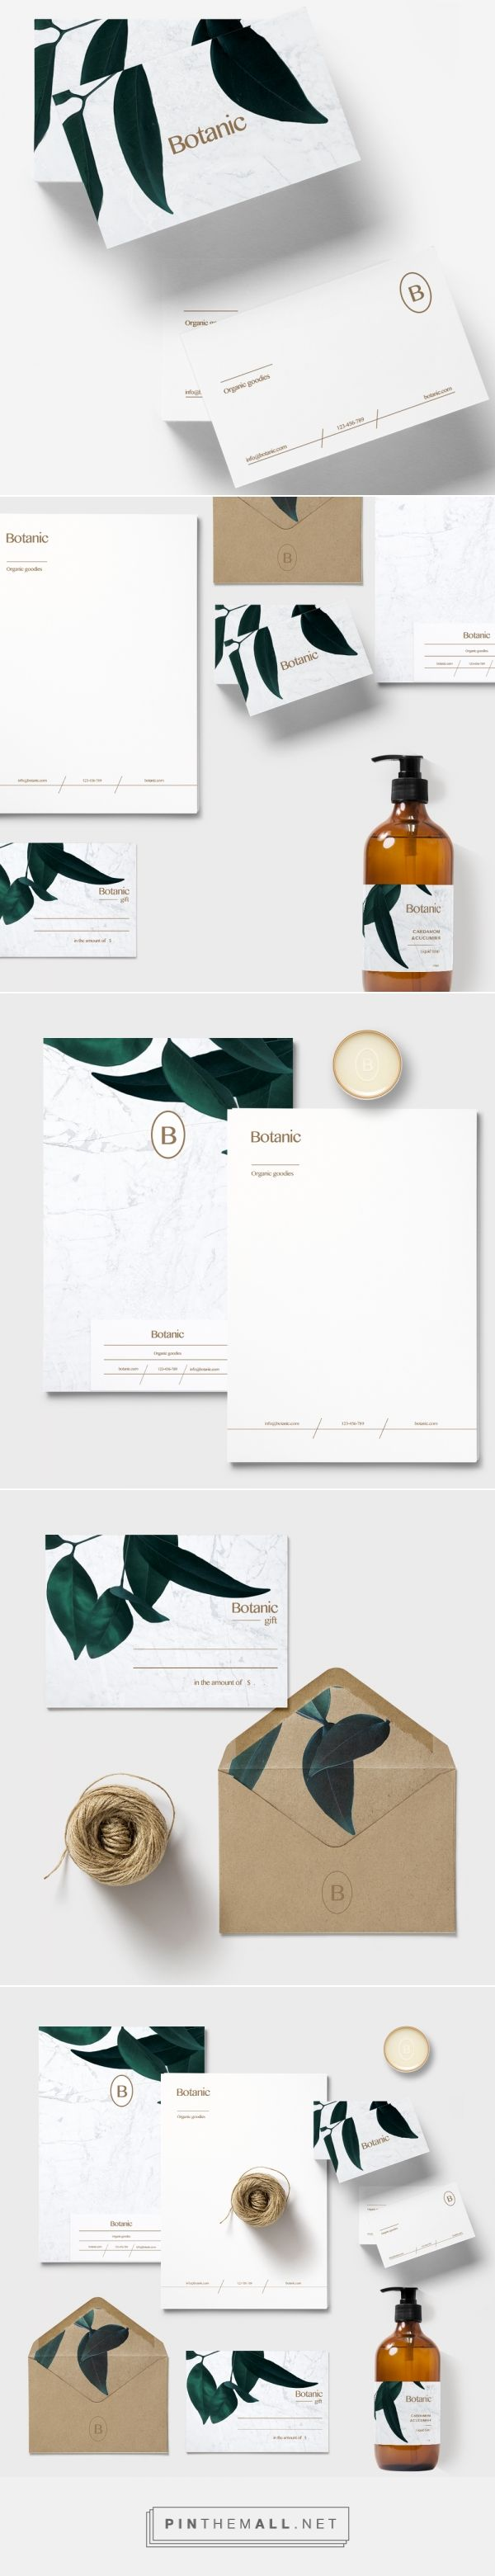 Botanic Organic Products Branding by Loolaa Designs | Fivestar Branding Agency – Design and Branding Agency & Curated Inspiration Gallery